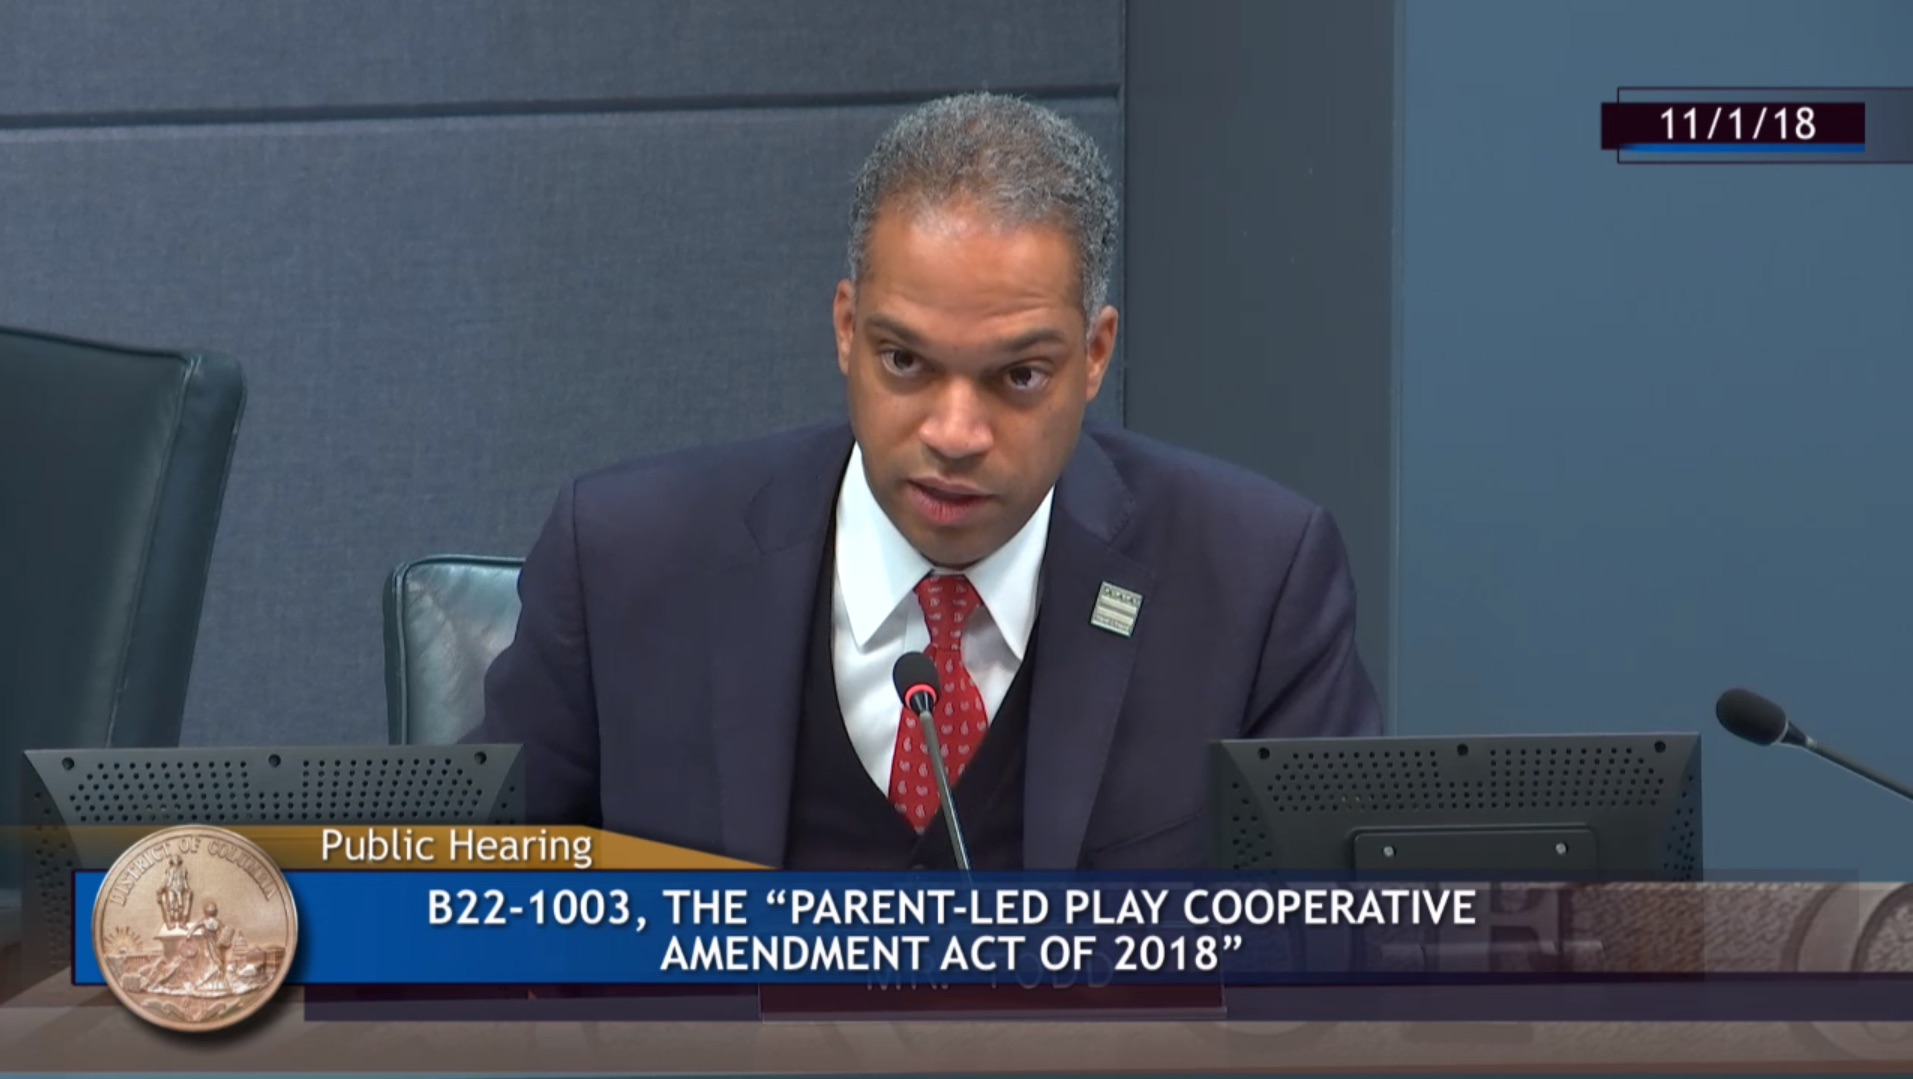 Todd speaking at the hearing.